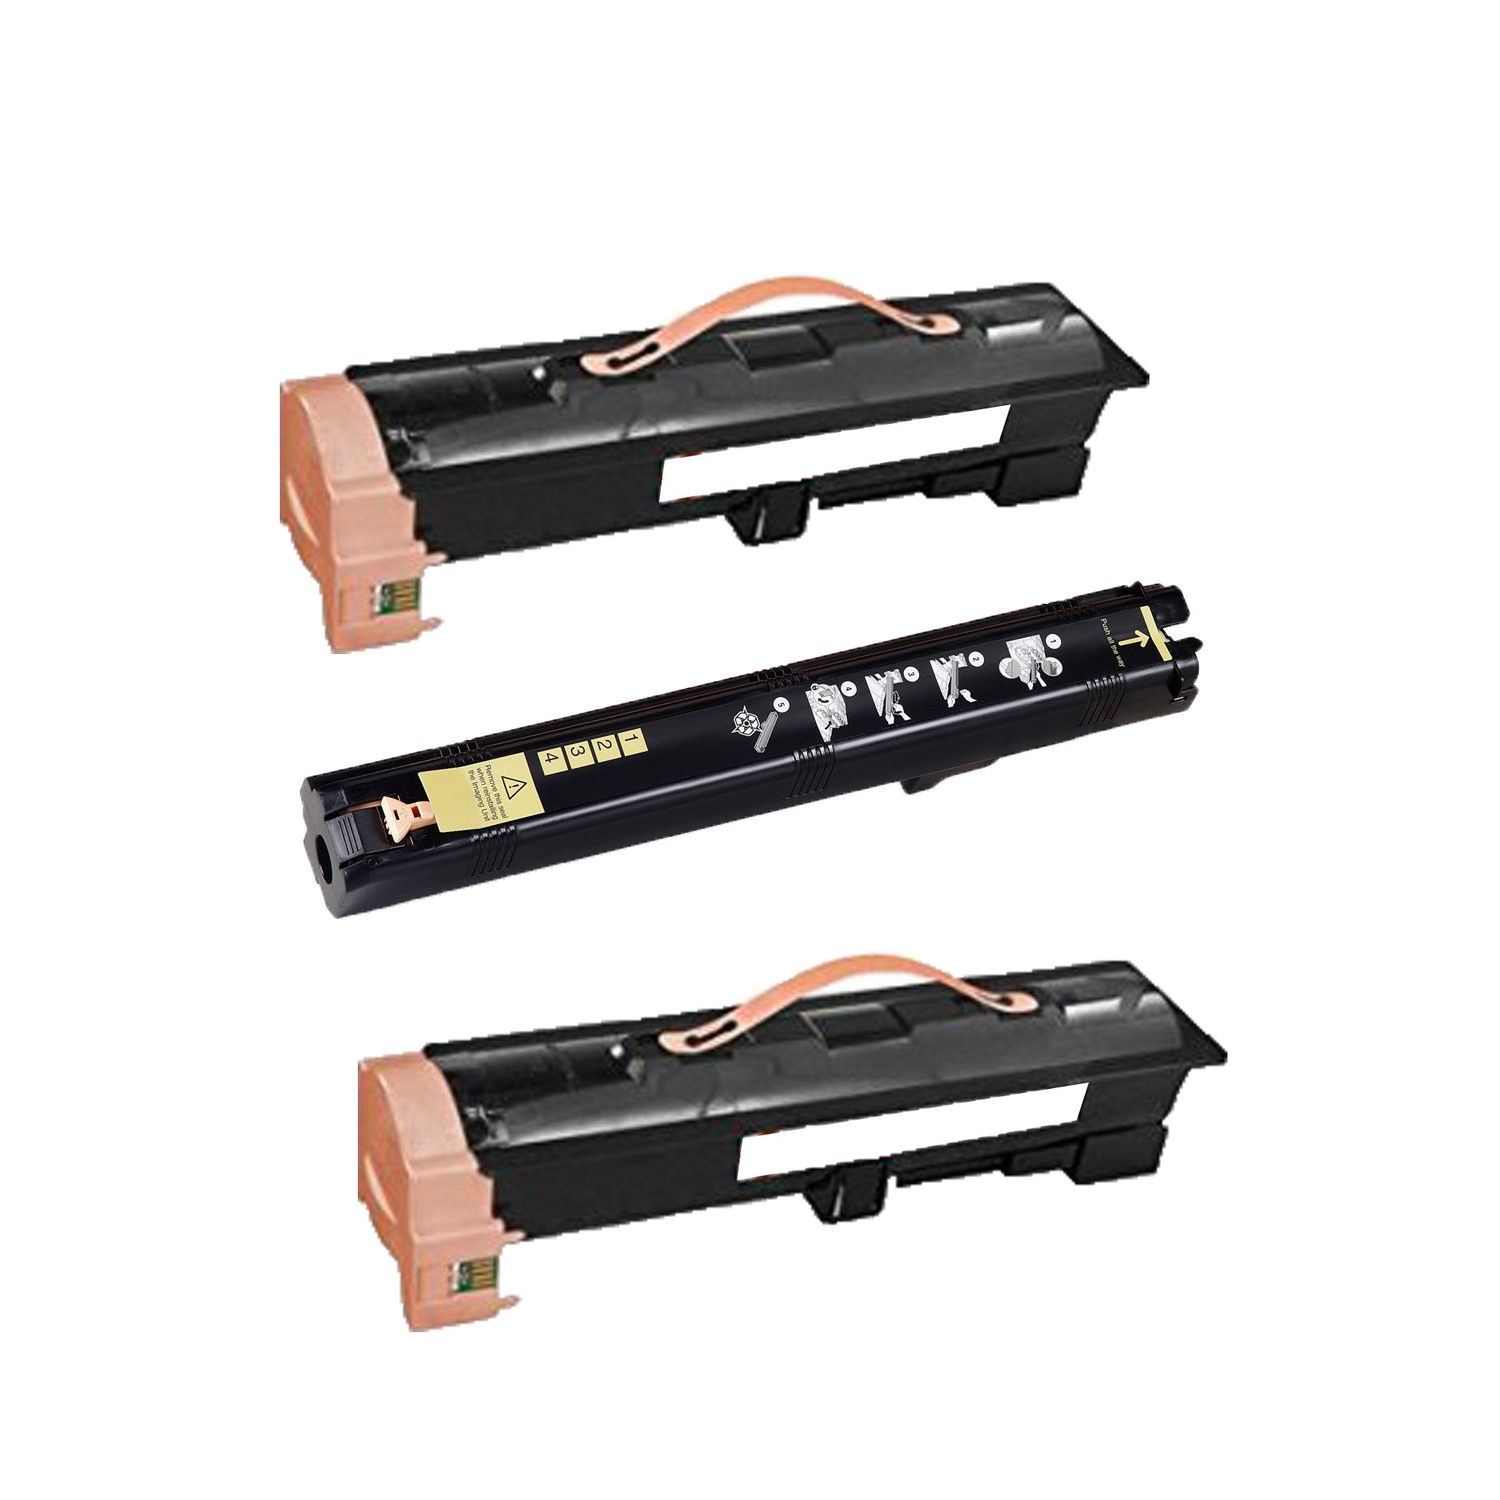 Office Mountain 2-Pack Remanufactured Black Toner & Drum Cartridge Xerox 006R01159 + 013R00591 for Xerox 5325... by Office Mountain